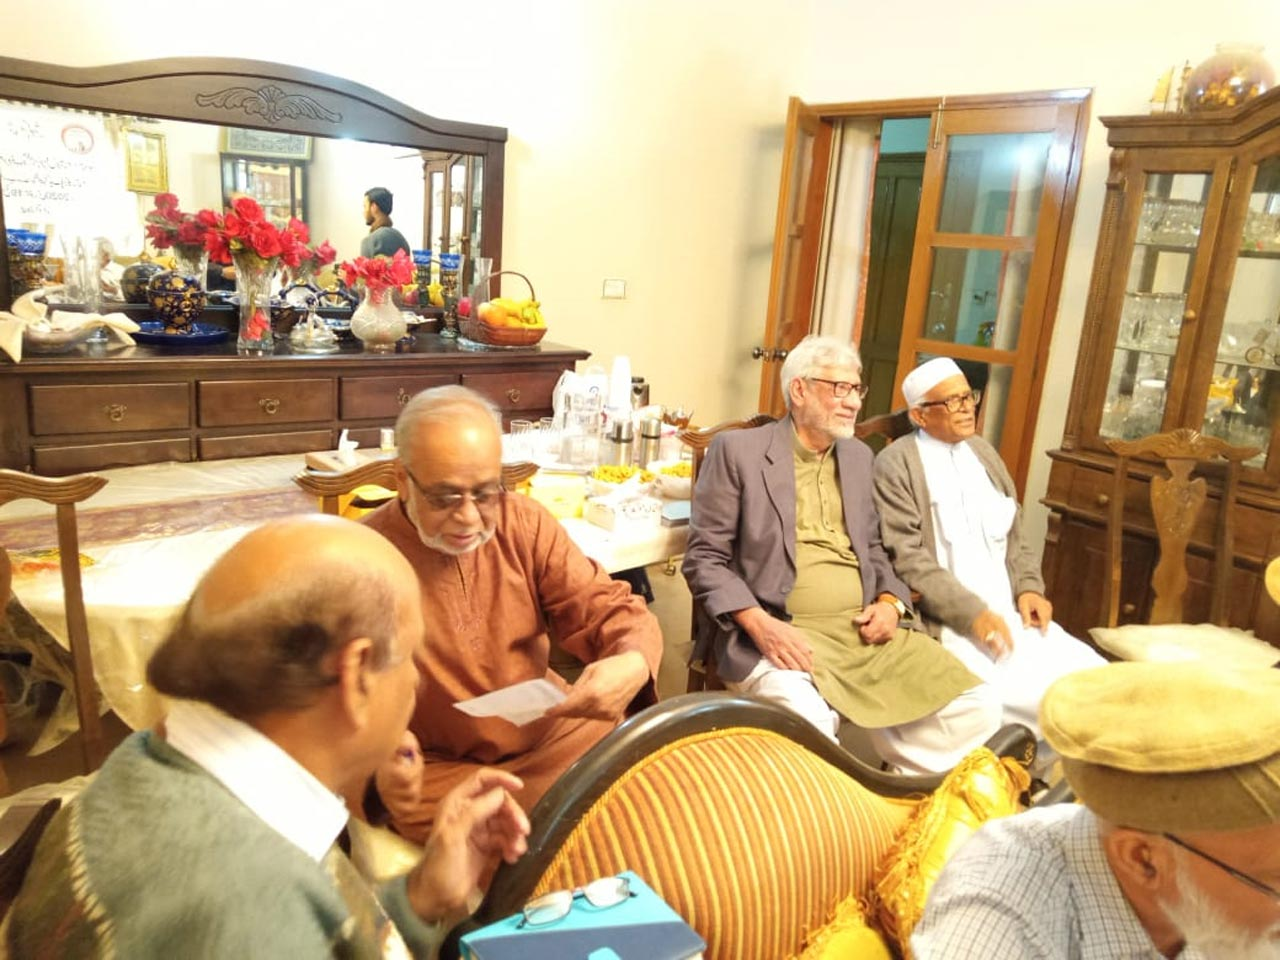 Mohammad Abdul Matin is discussing some important issue with Farooq Khan